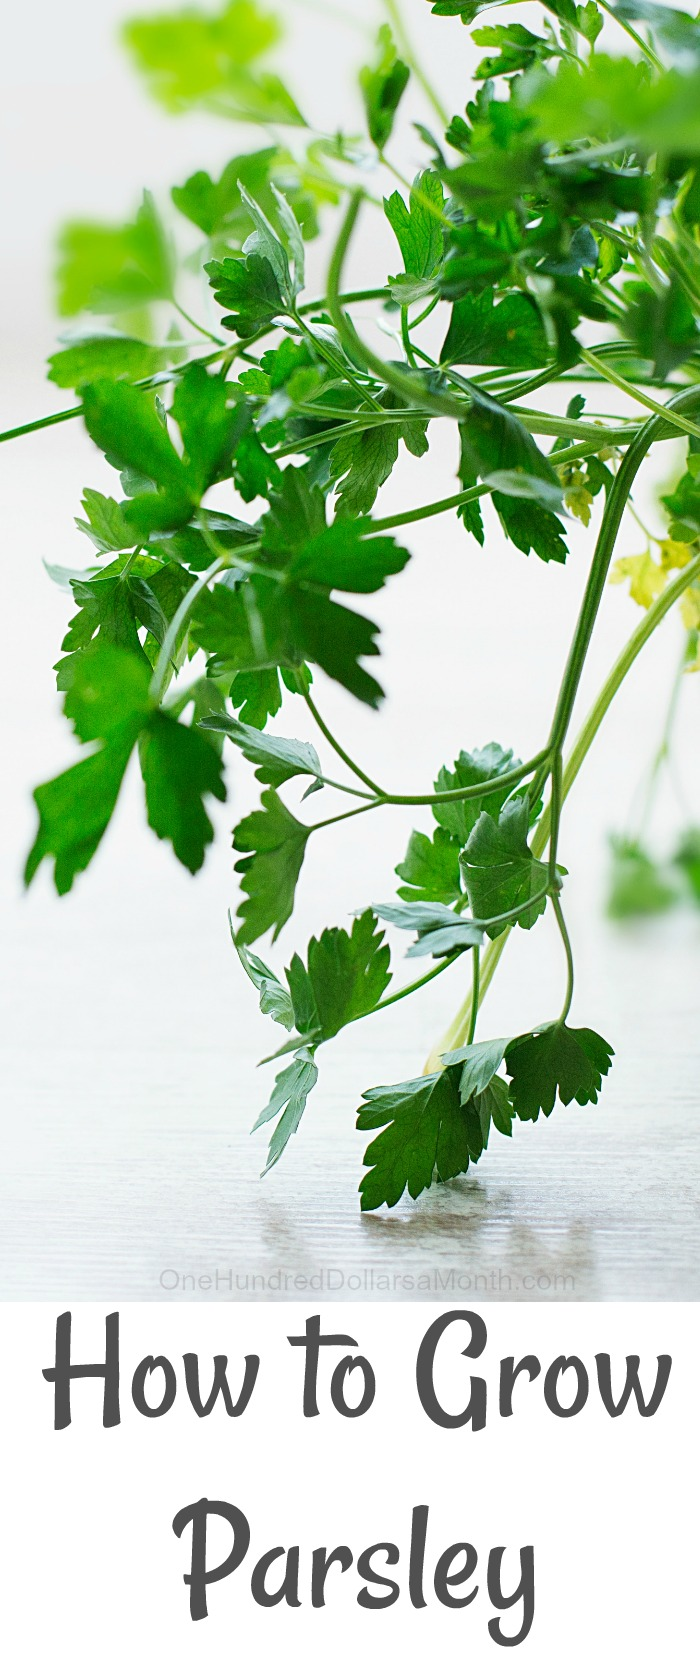 How to Grow Parsley {Start to Finish}